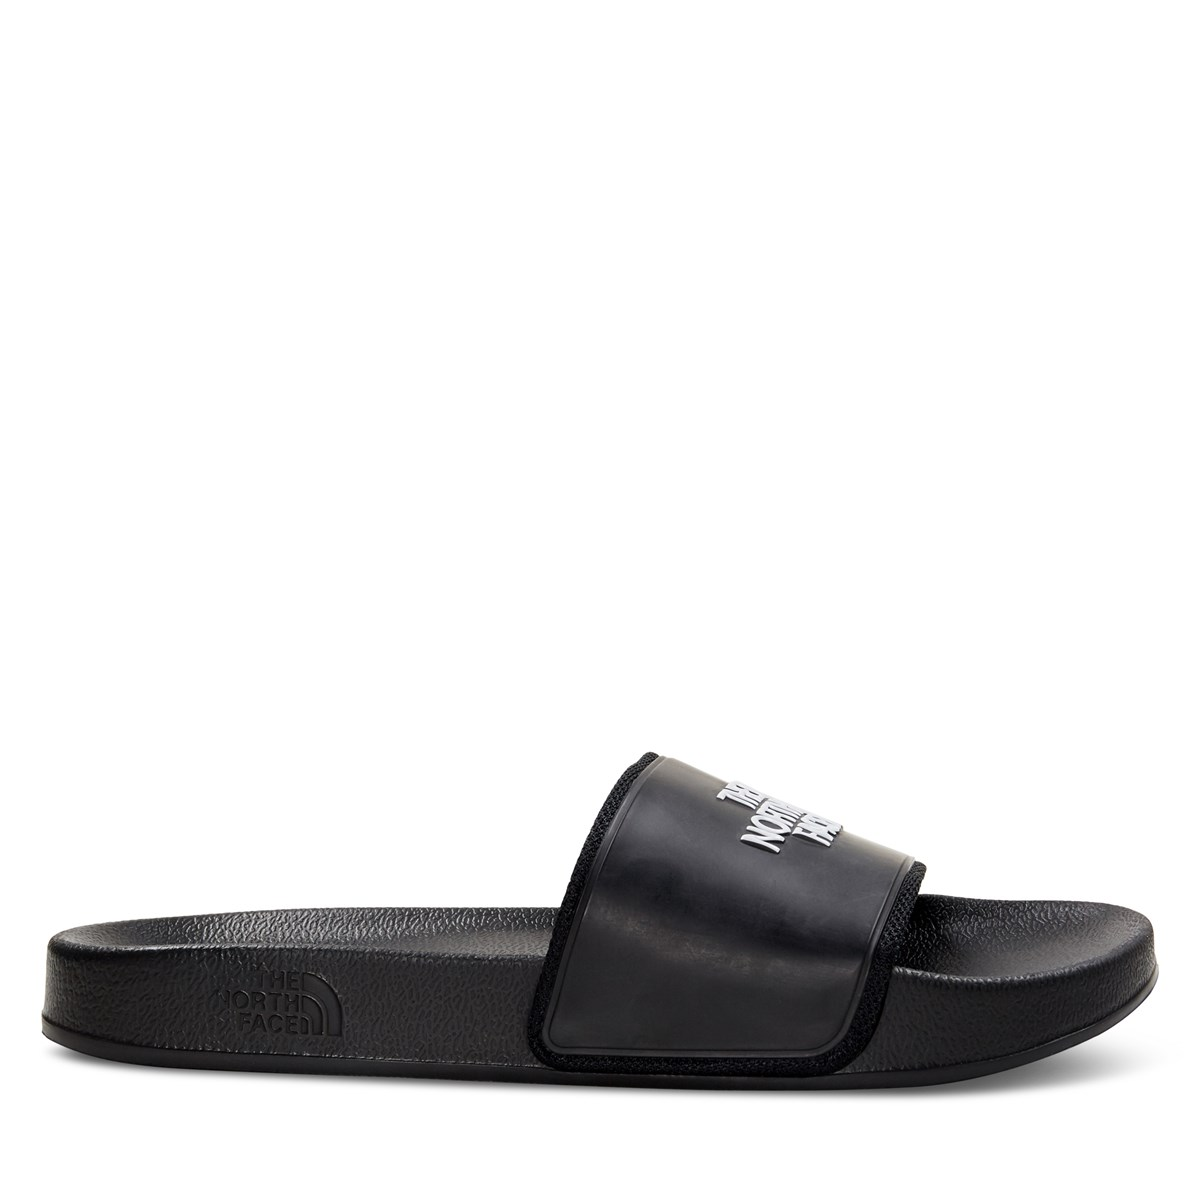 Men's Base Camp Slide Sandal in Black